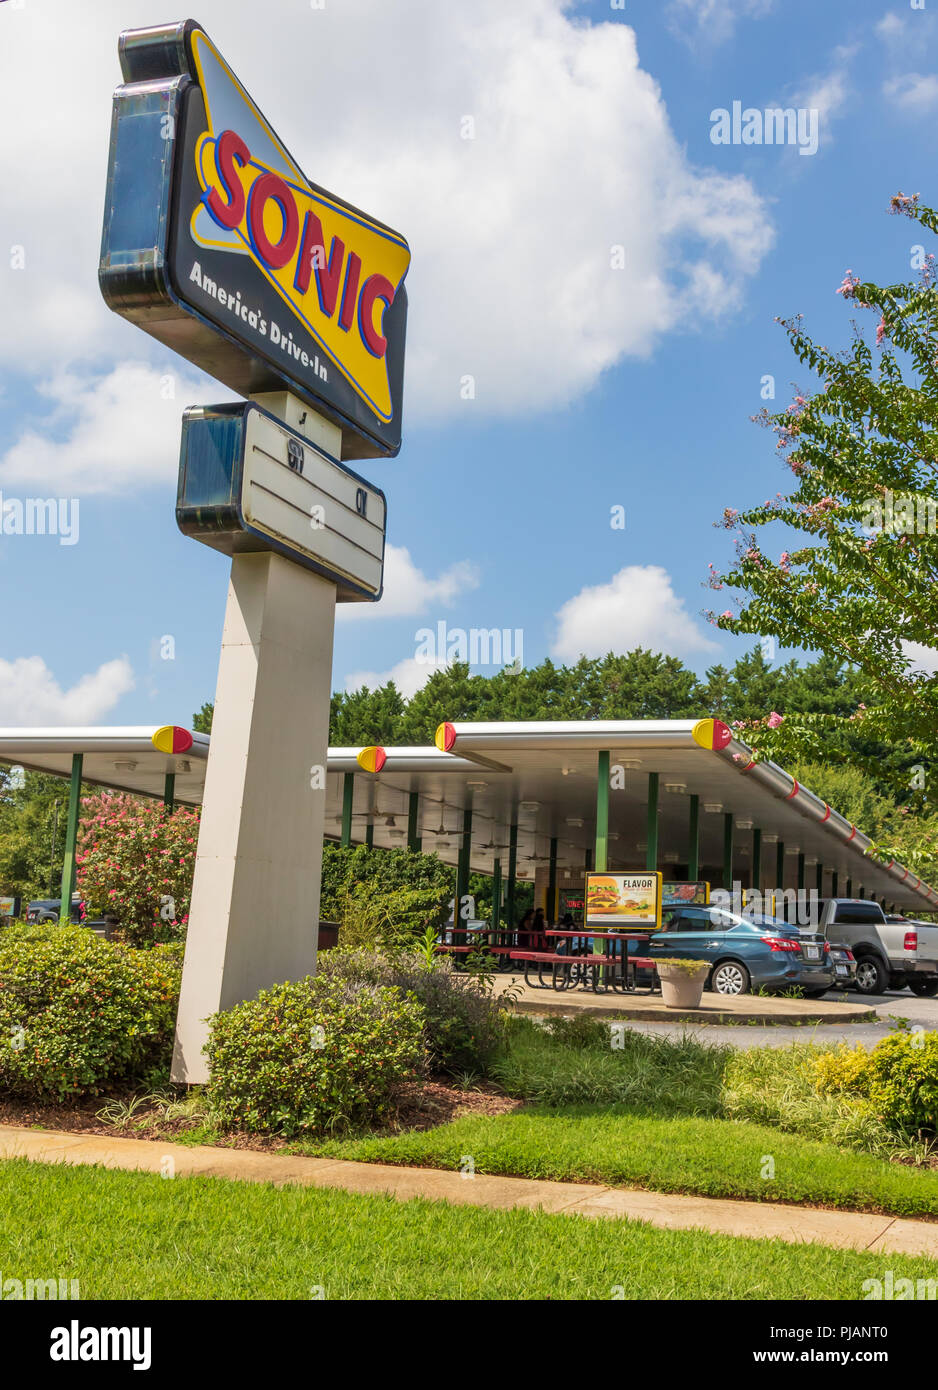 NEWTON, NC, USA-9/2/18:  A Sonic drive-in fast food restaurant, showing a road sign and drive up service. 4 people visible at table under awning. Stock Photo